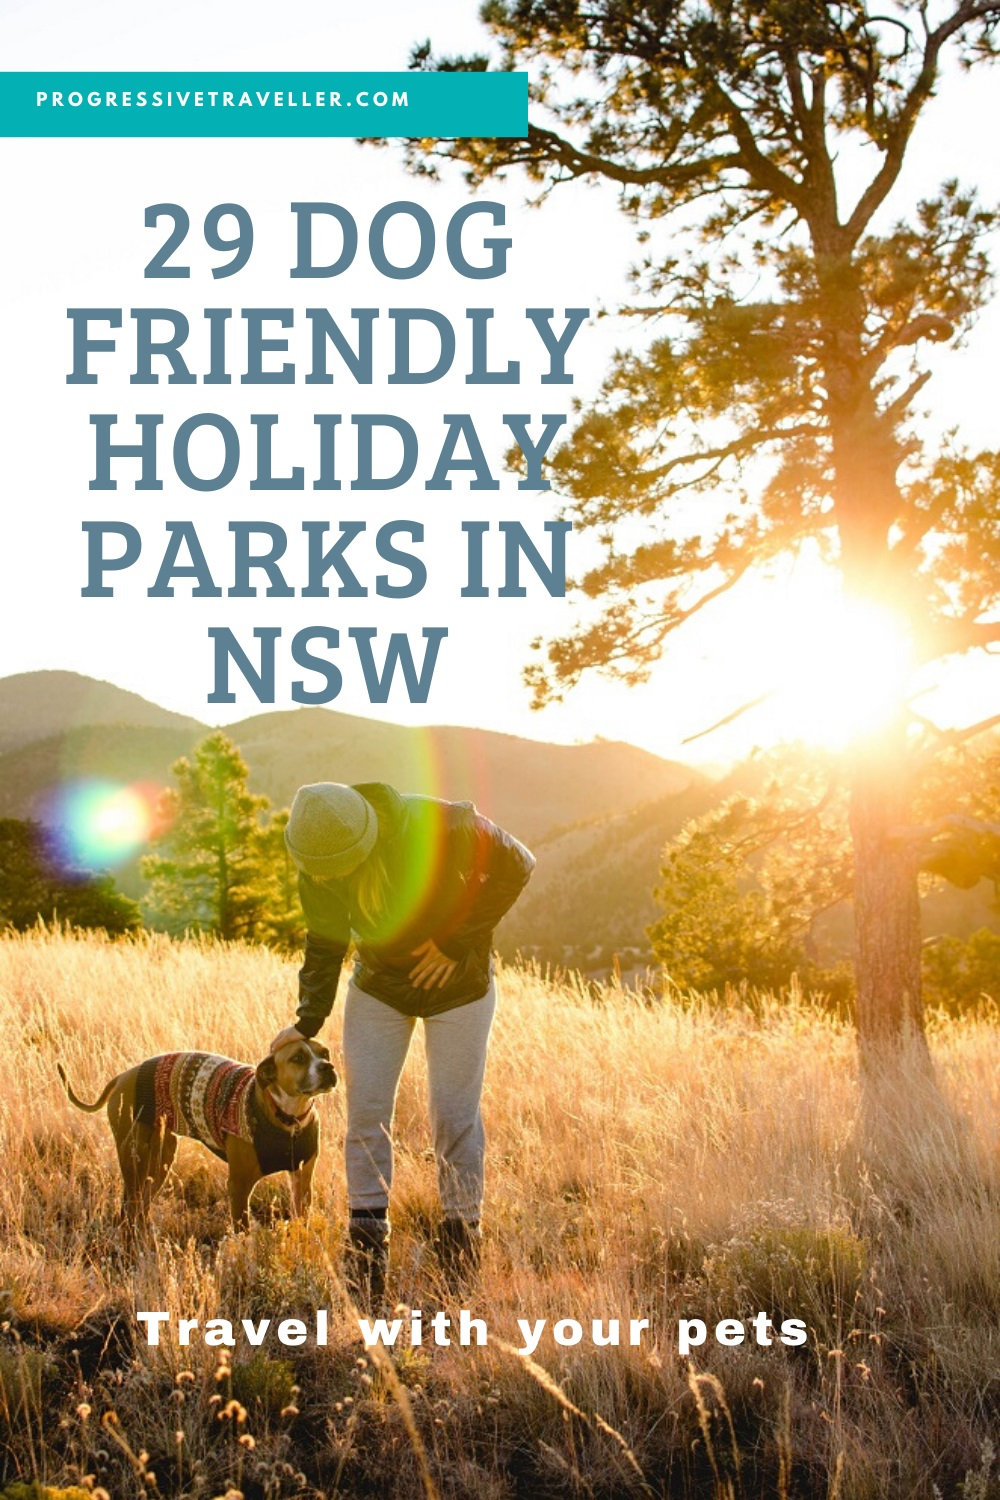 Dog-Friendly Holiday Parks in NSW